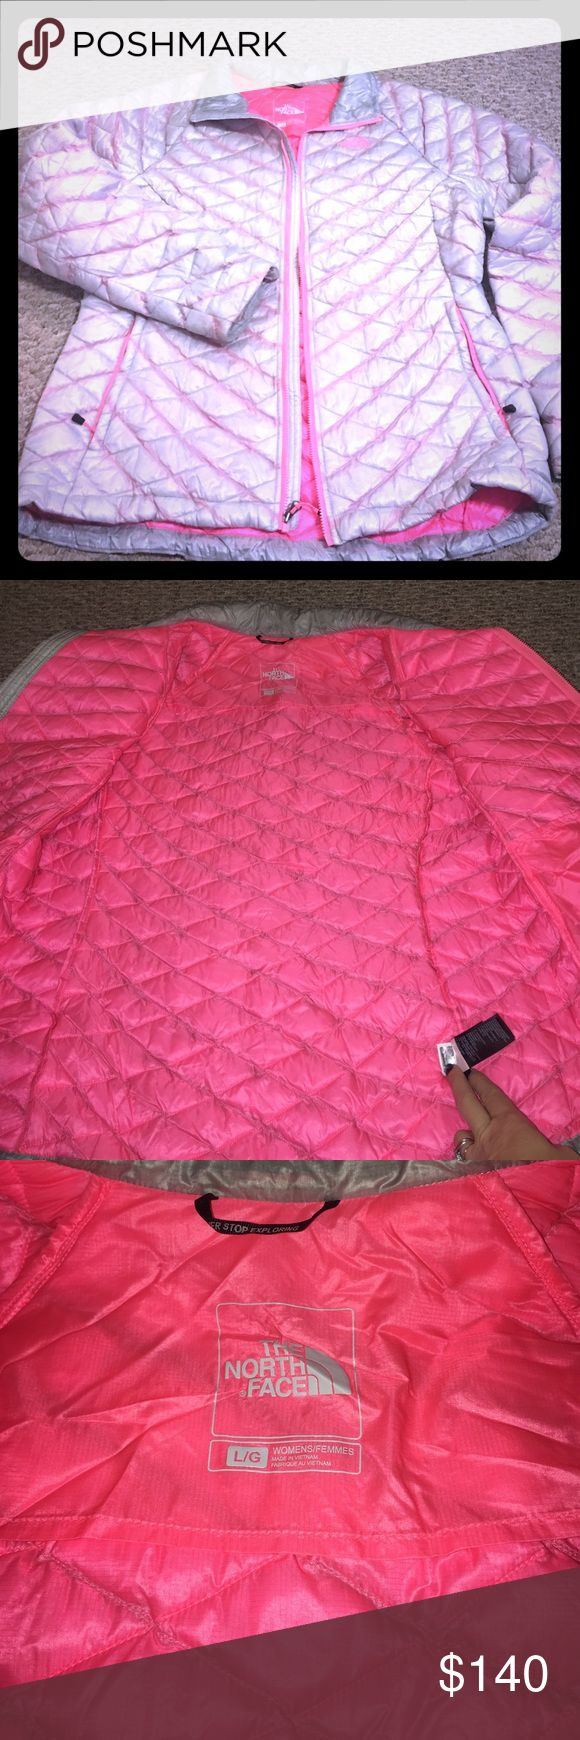 """The North Face thermoball ladies jacket Awesome light weight but super warm North Face jacket. Sliver and HOT pink. Only wore a couple times did not like the fit on me. I am 134 lbs 5'5"""" and have a booty. Felt like it was tight in the rear so went a few sizes larger usually wear a size small. The arms then felt baggy. Spent $200 at sports authority and has been sitting in my closet ever since. I'm hoping to find it a good home where someone will get some use out of it. It's a thin jacket the…"""